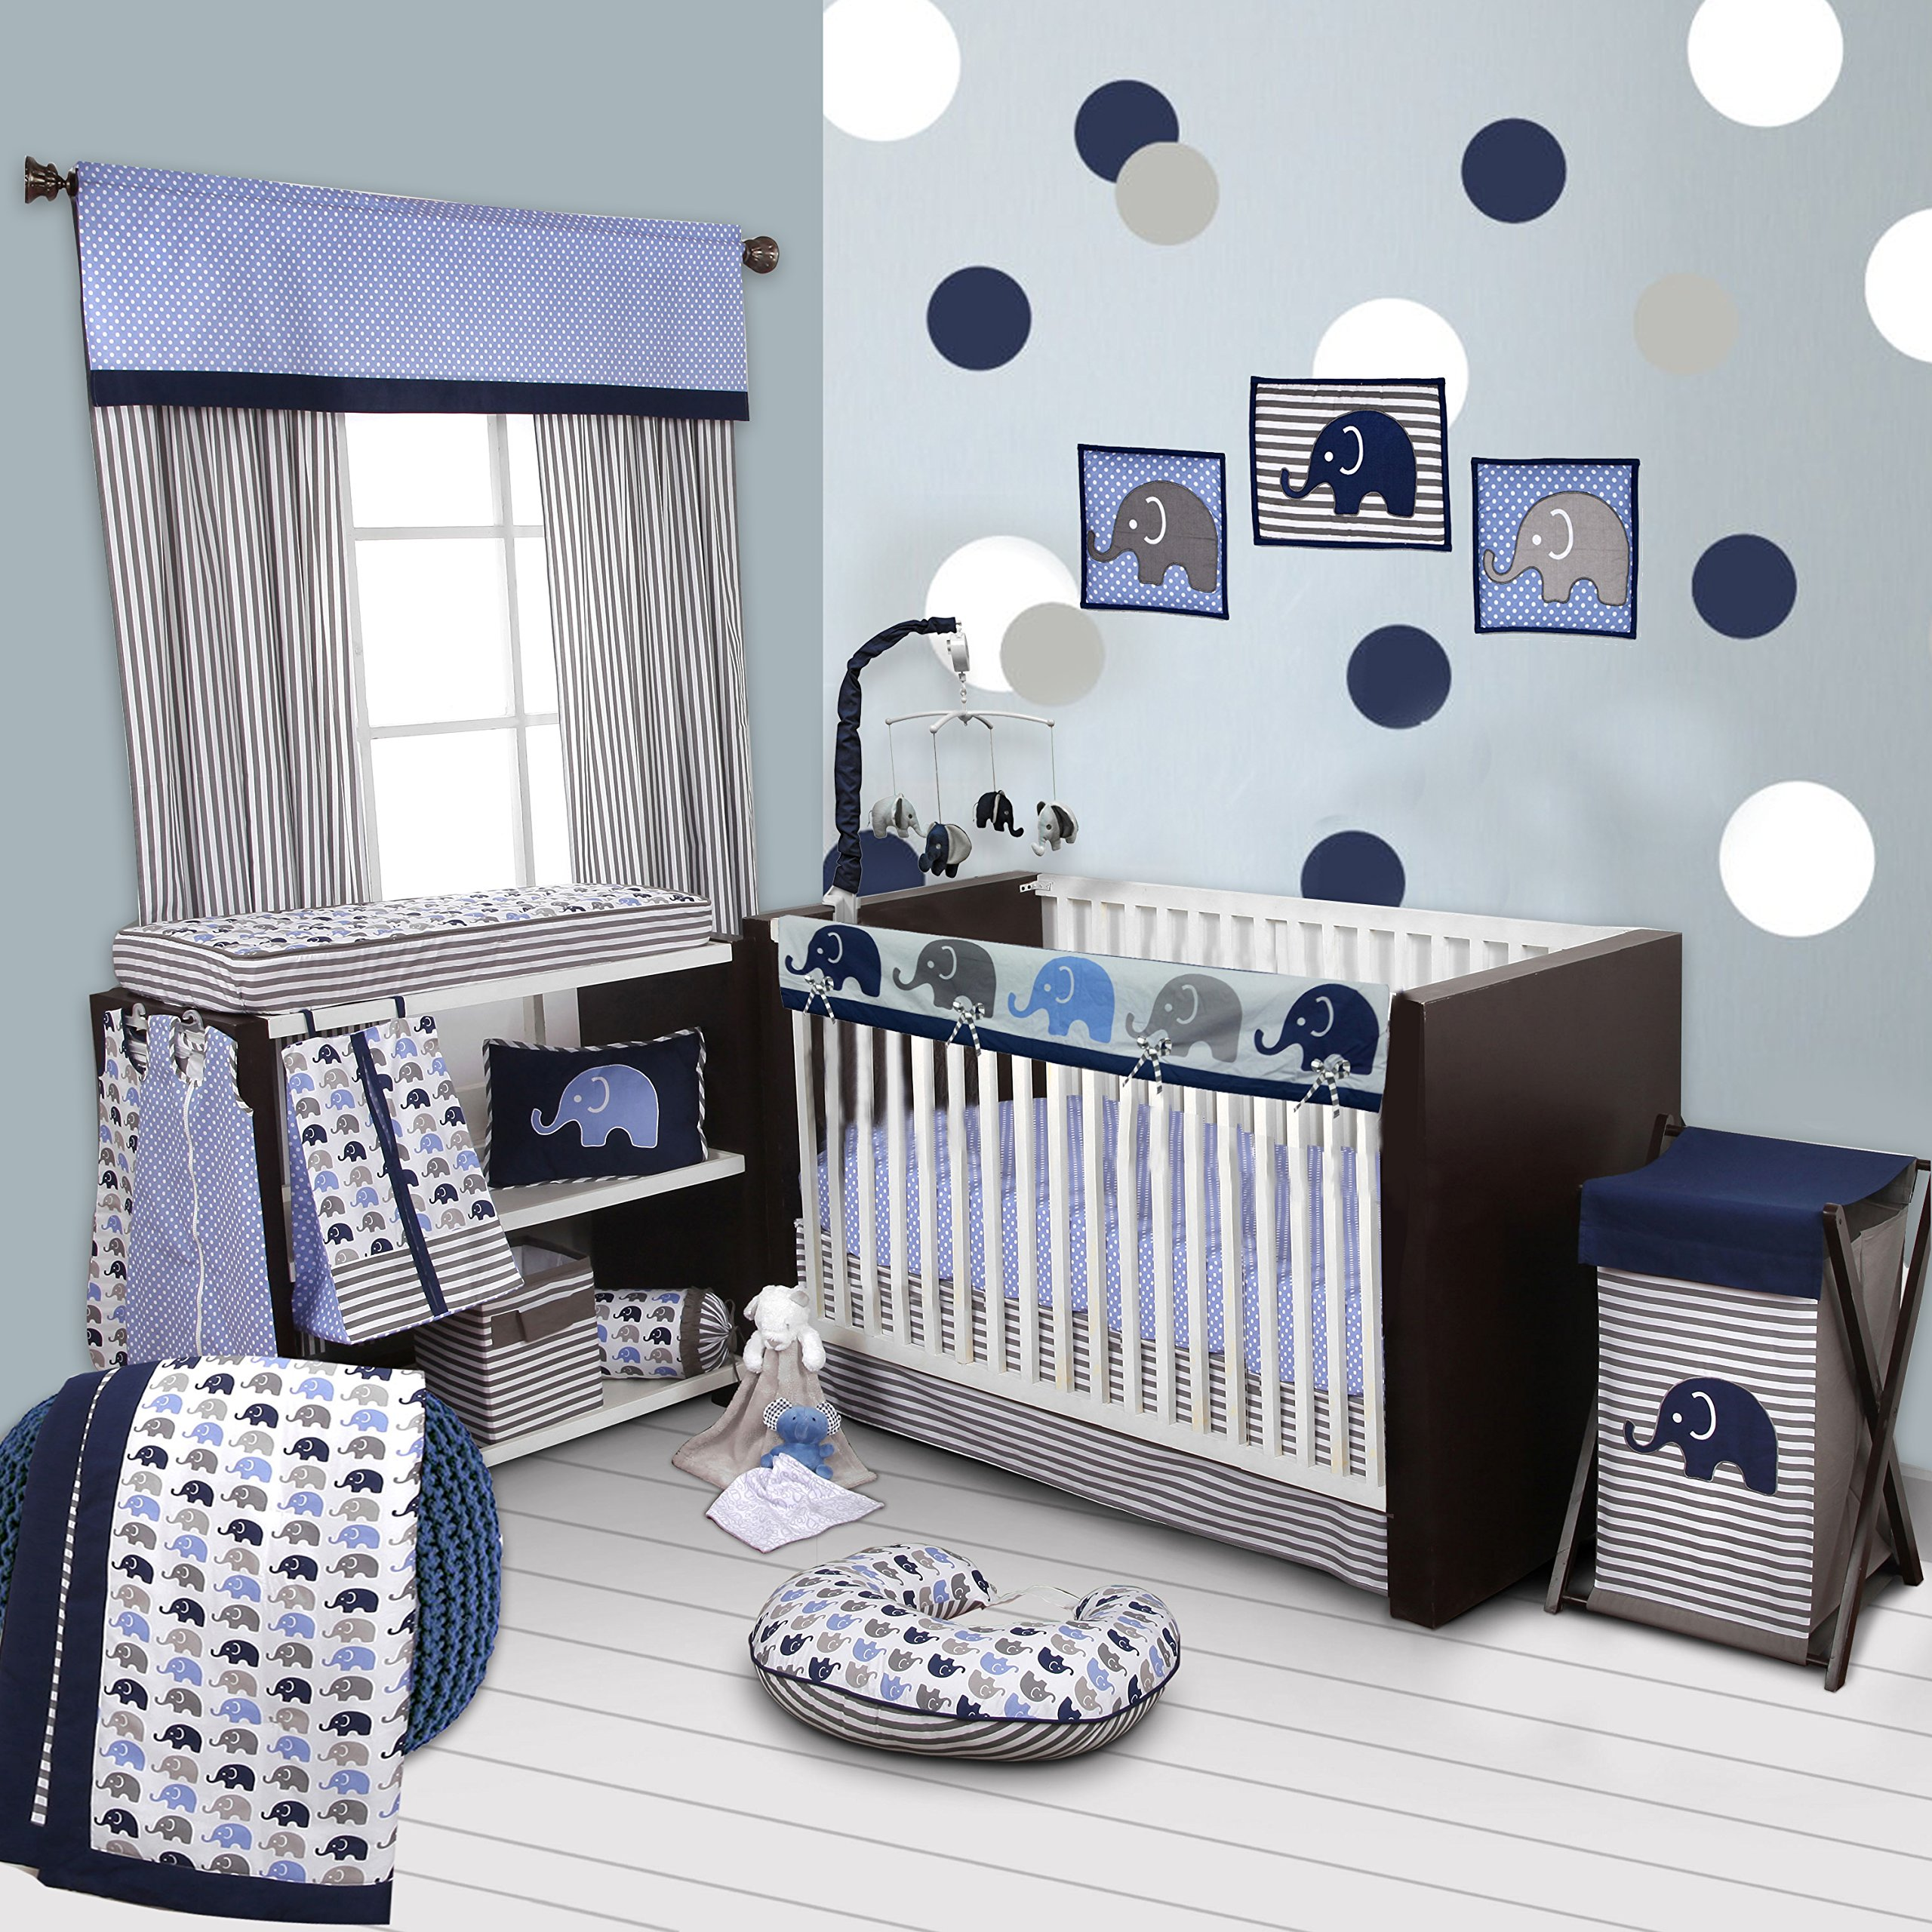 c21eaec14 Bacati 10-Piece Elephants Nursery-In-A-Bag Crib Bedding Set with Long Rail  Guard, Blue/Grey